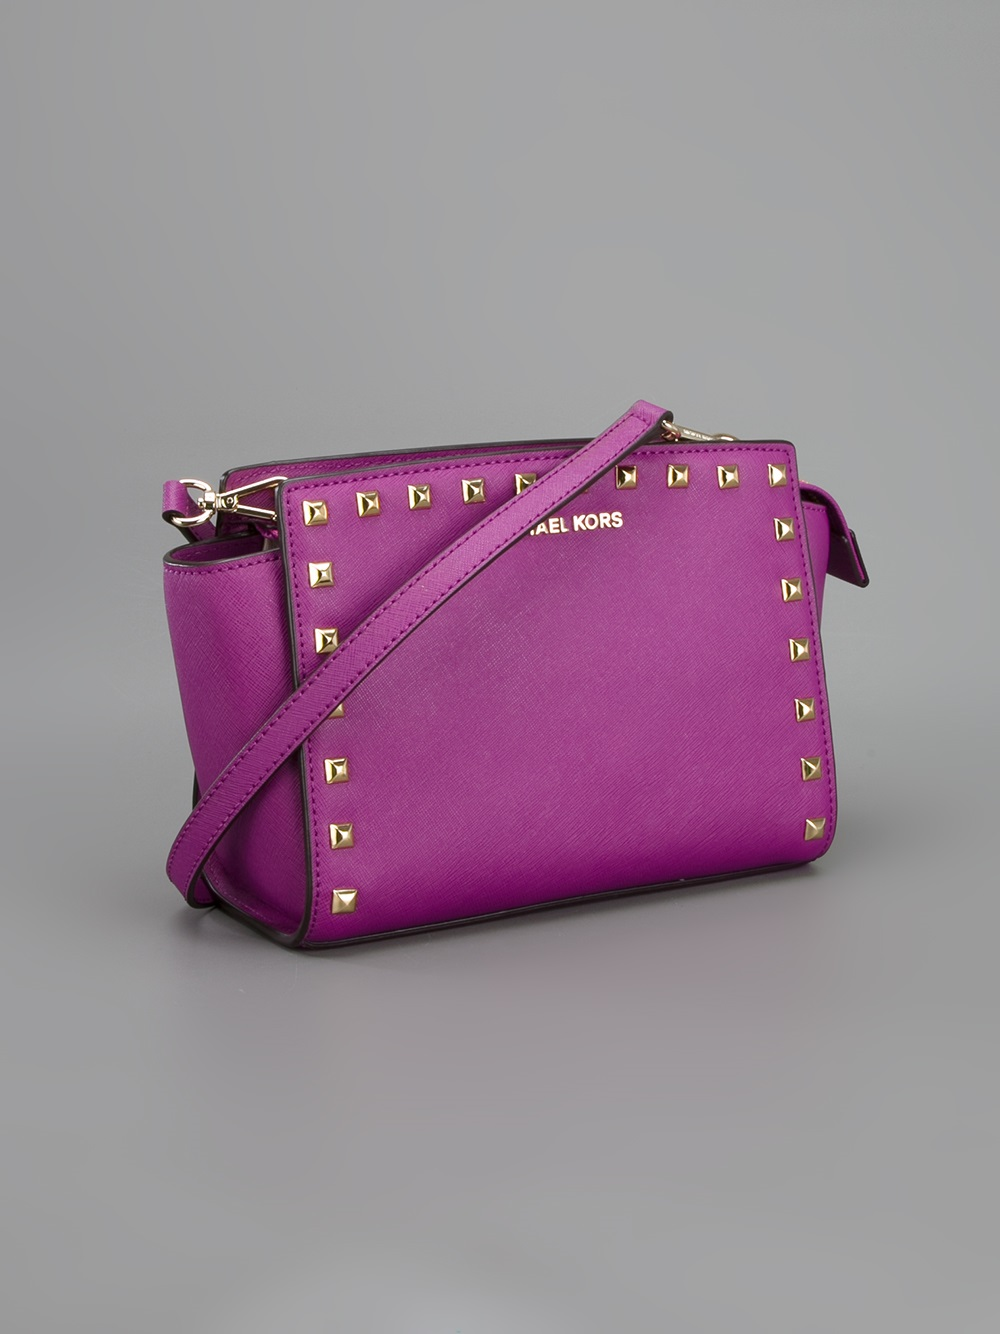 e67d95eeec92 ... coupon code lyst michael michael kors selma studded cross body bag in  purple 61964 7194f